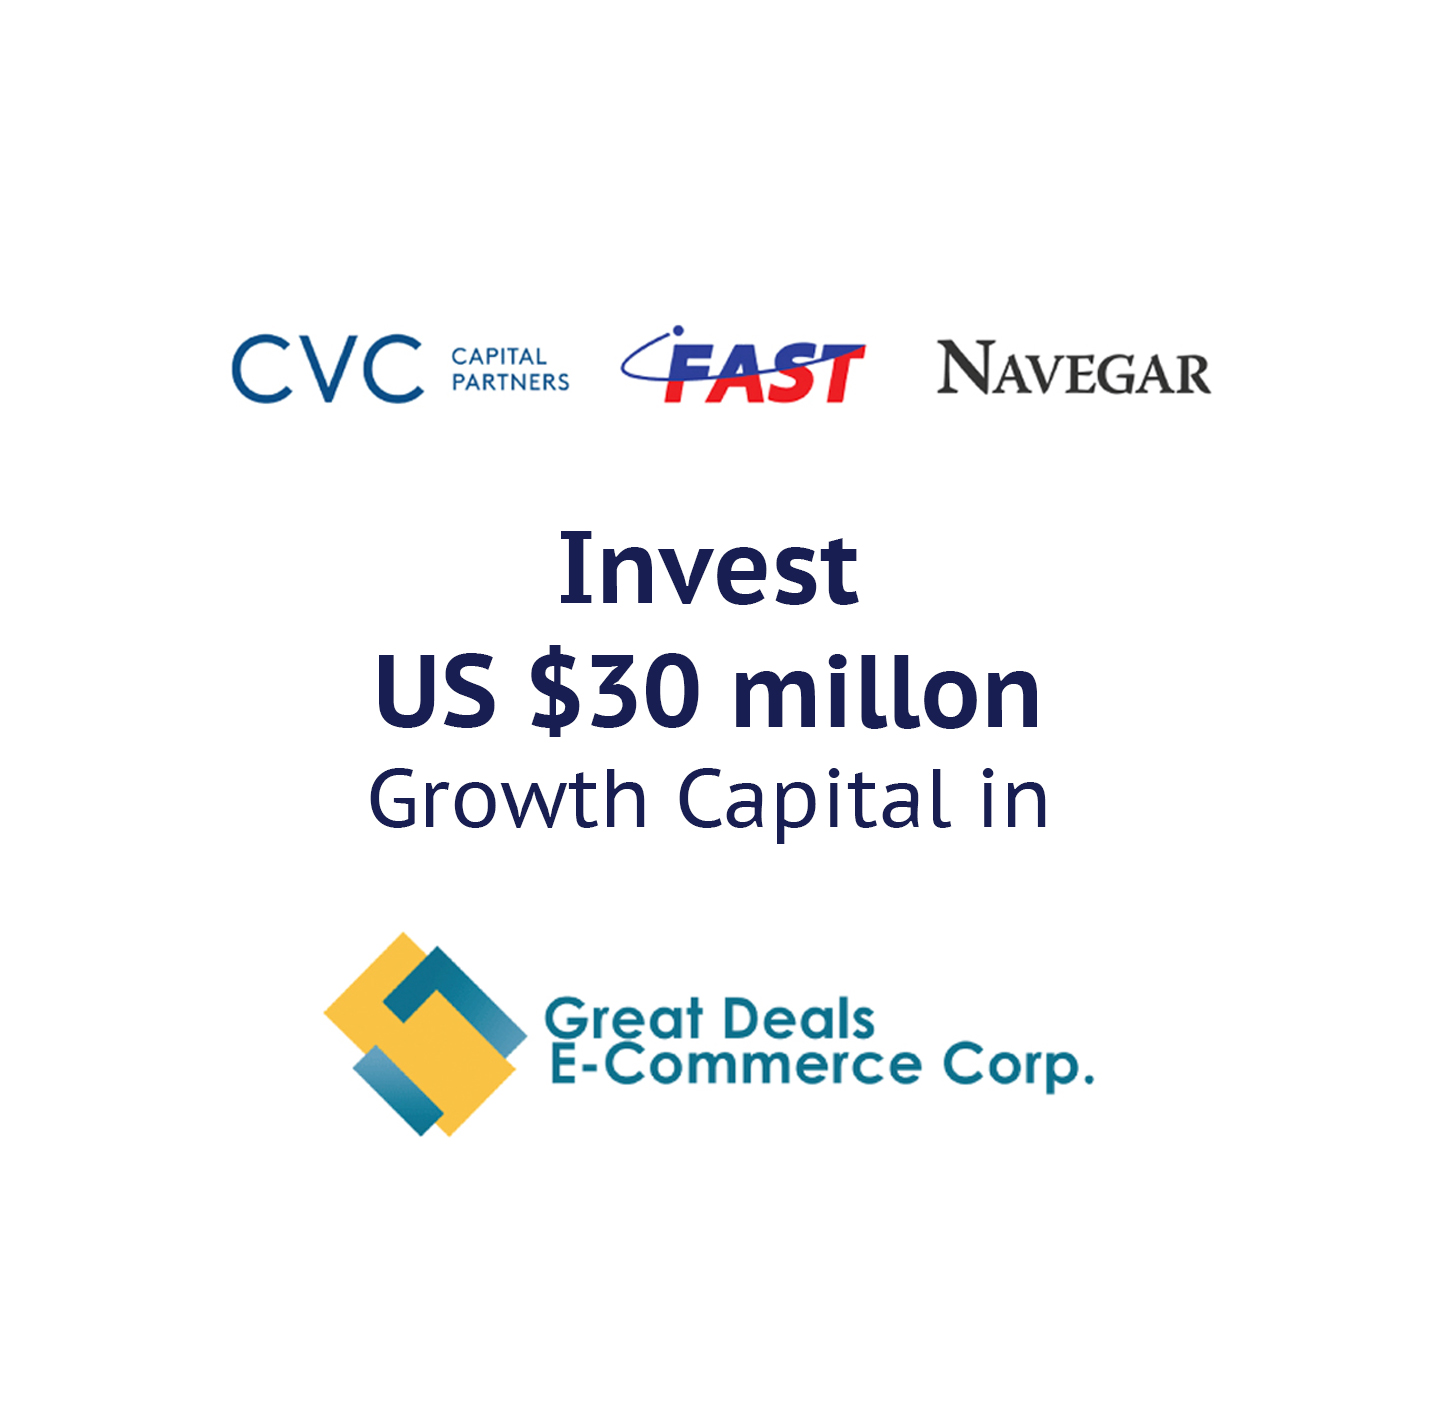 Rocket Equities Deal with Great Deals e-commerce corp with CVC Capital Partners, Fast Logistics an Navegar as the lead investors